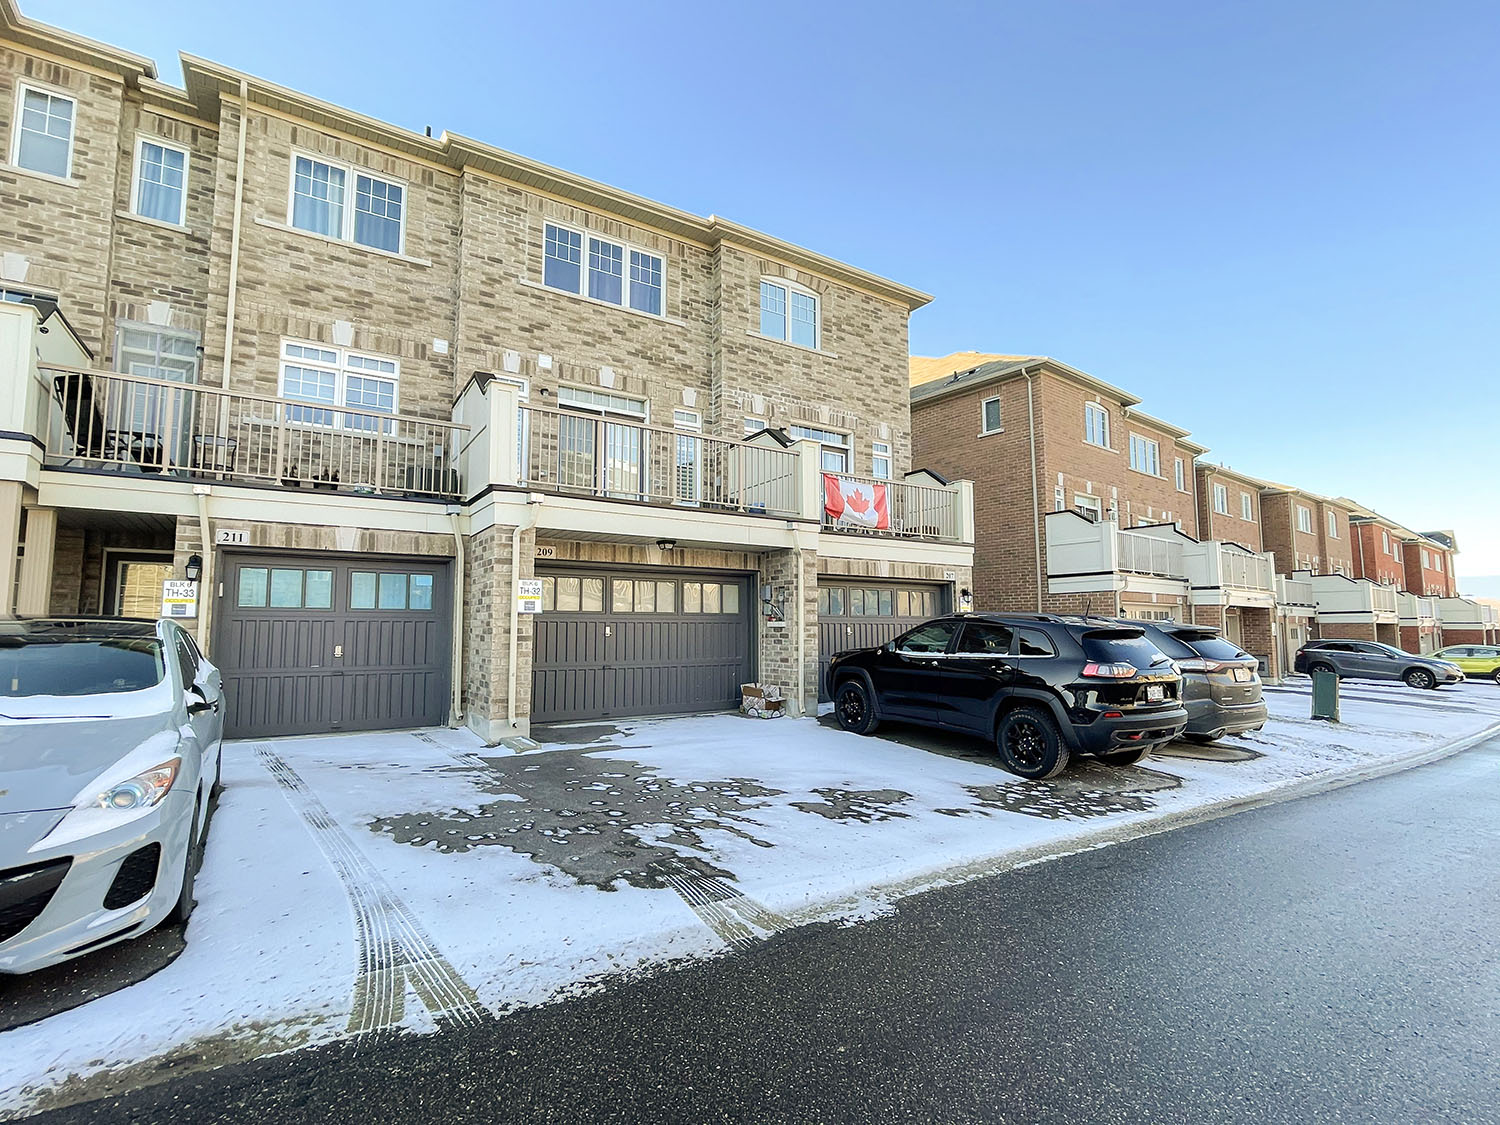 209 Dundas Way, Markham, Ontario  L6E 0T1 - Photo 1 - RP7158408087